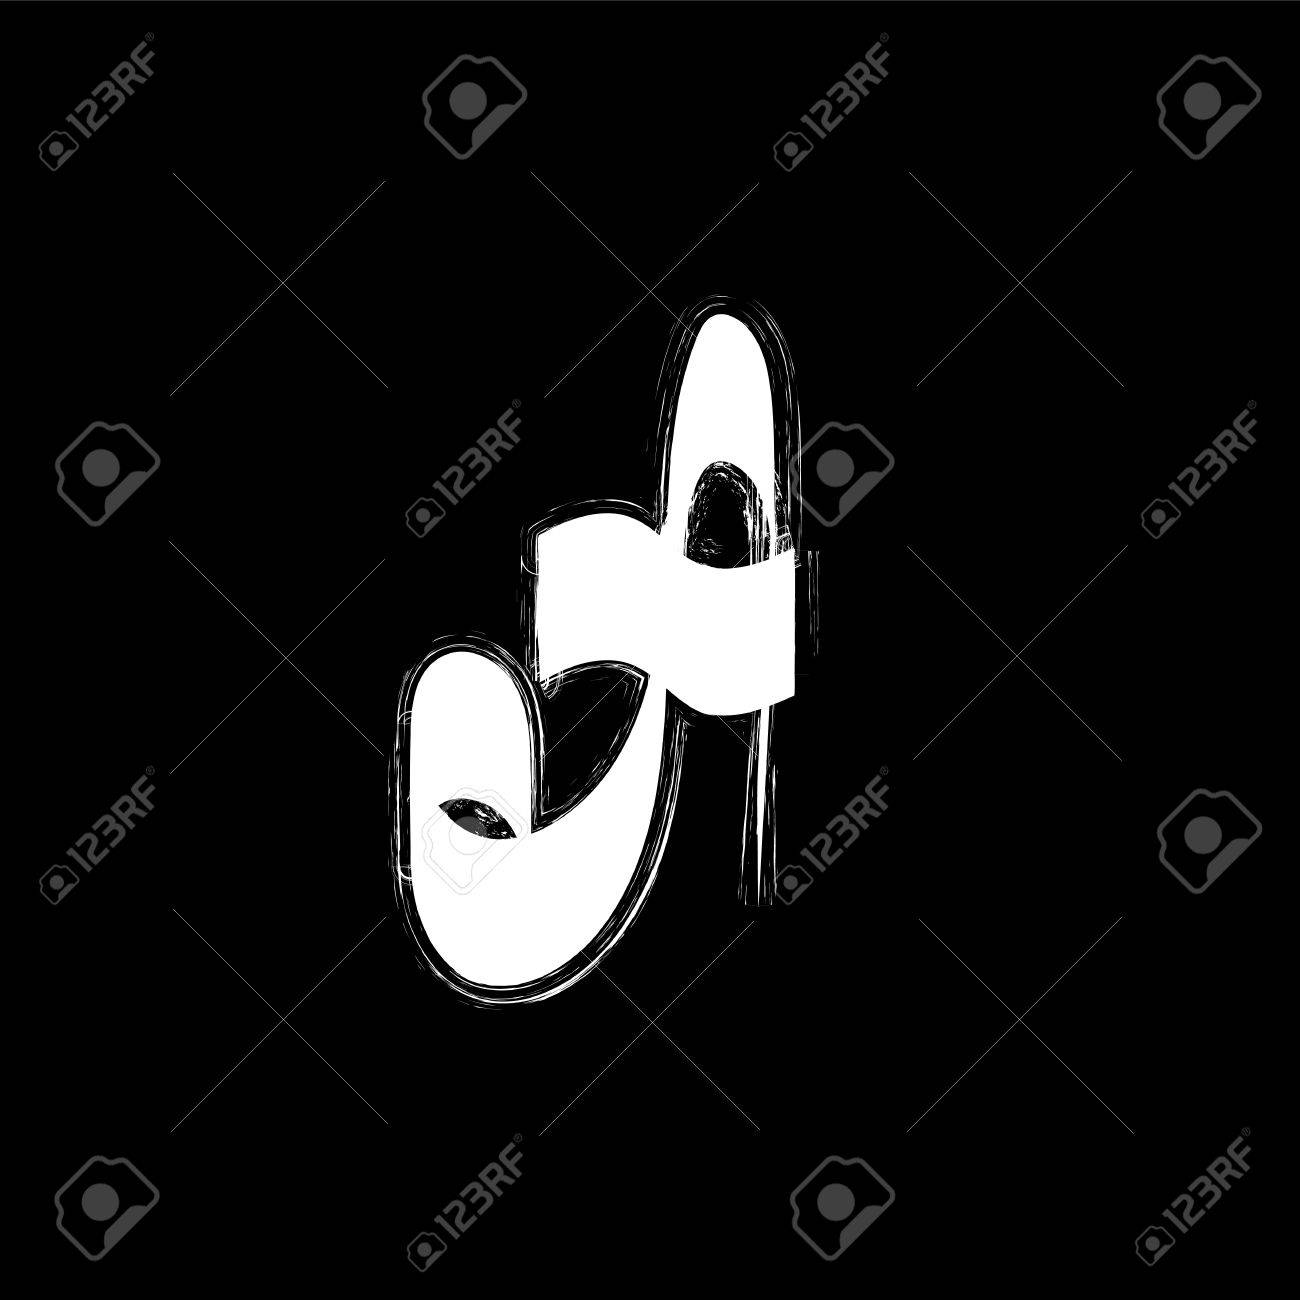 Isolated graffiti font icon white grunge style letter a on black background underground hip